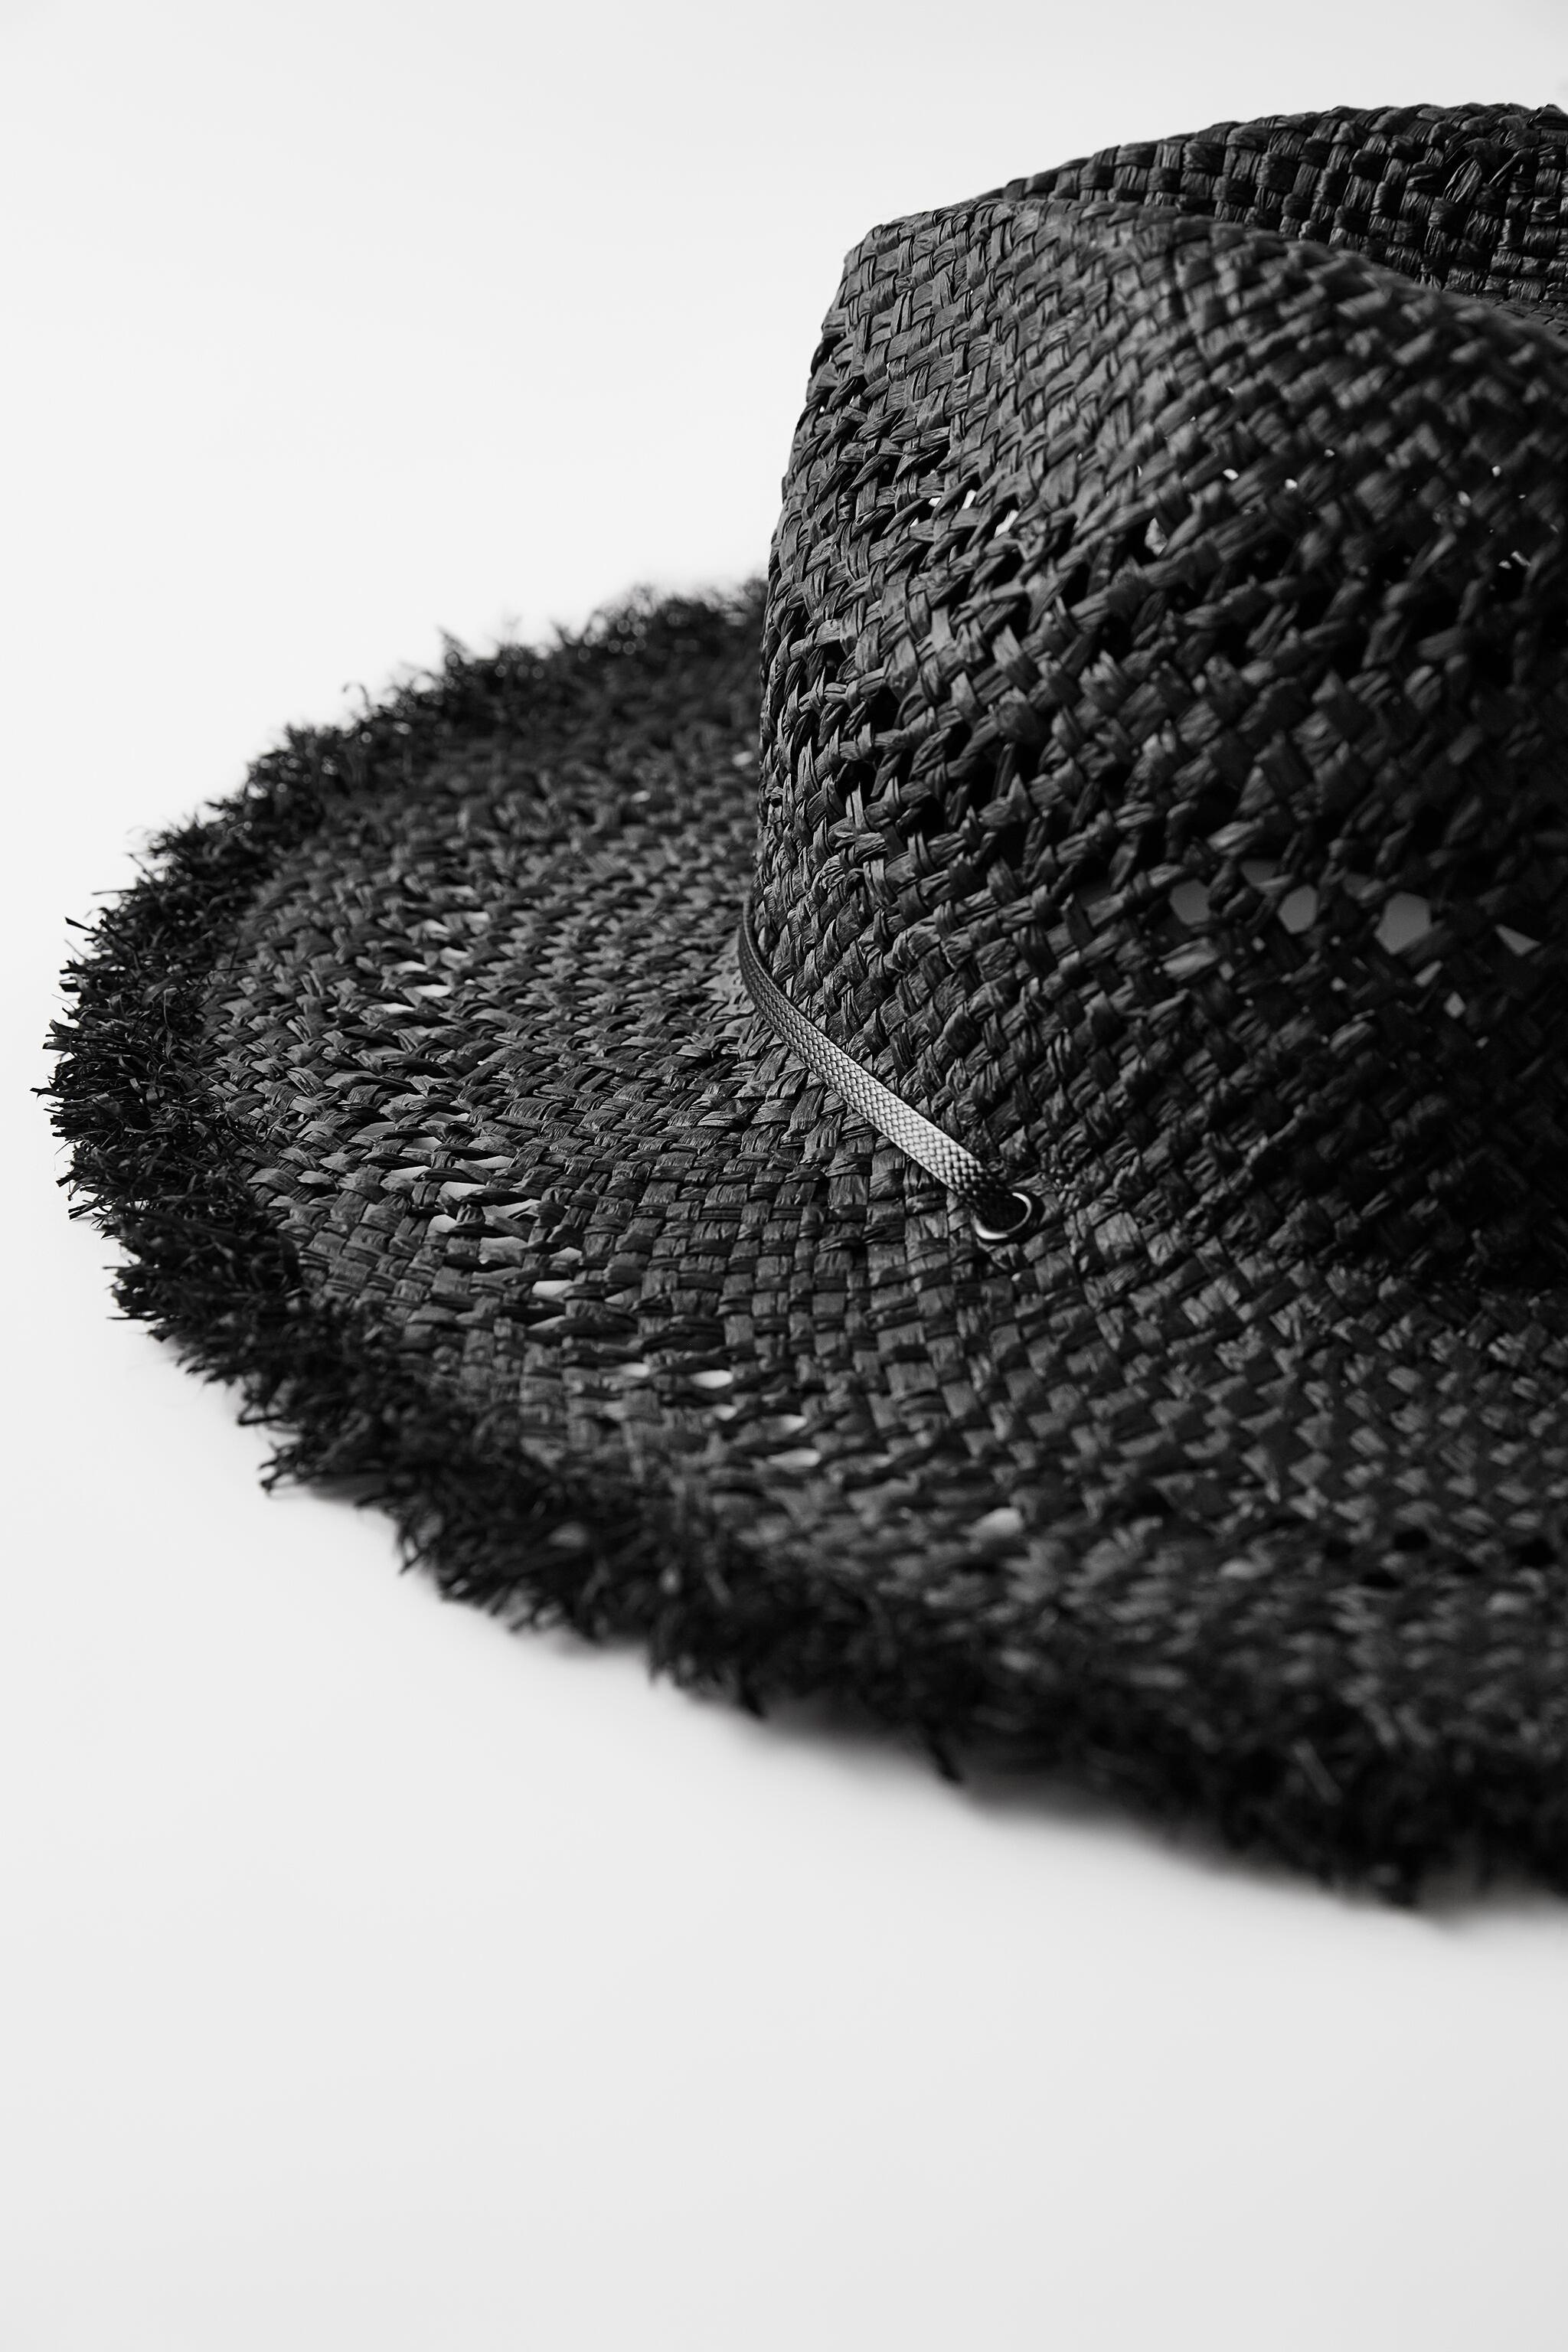 WOVEN HAT 1